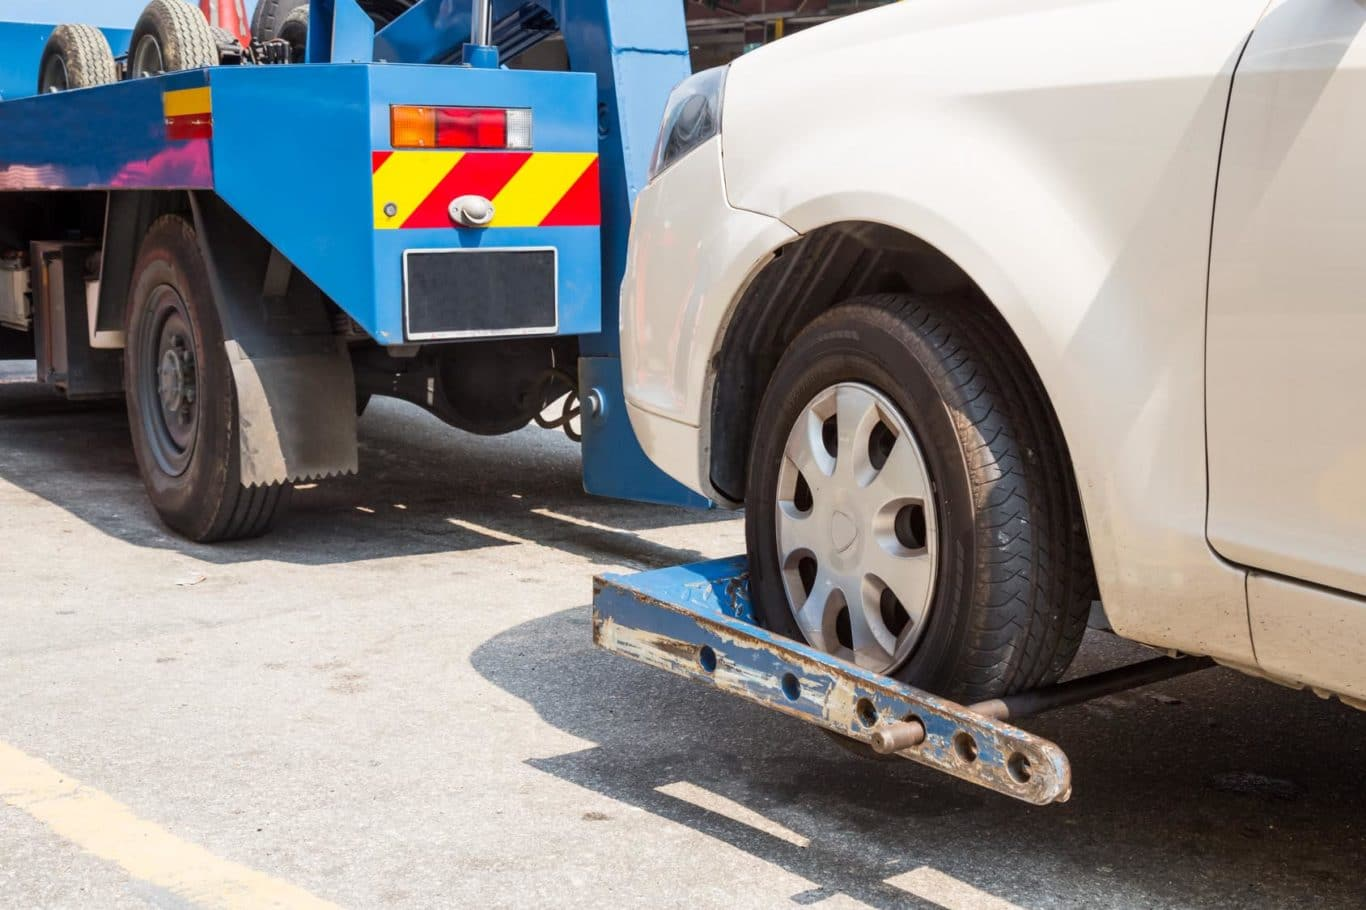 Santry expert Breakdown Recovery services